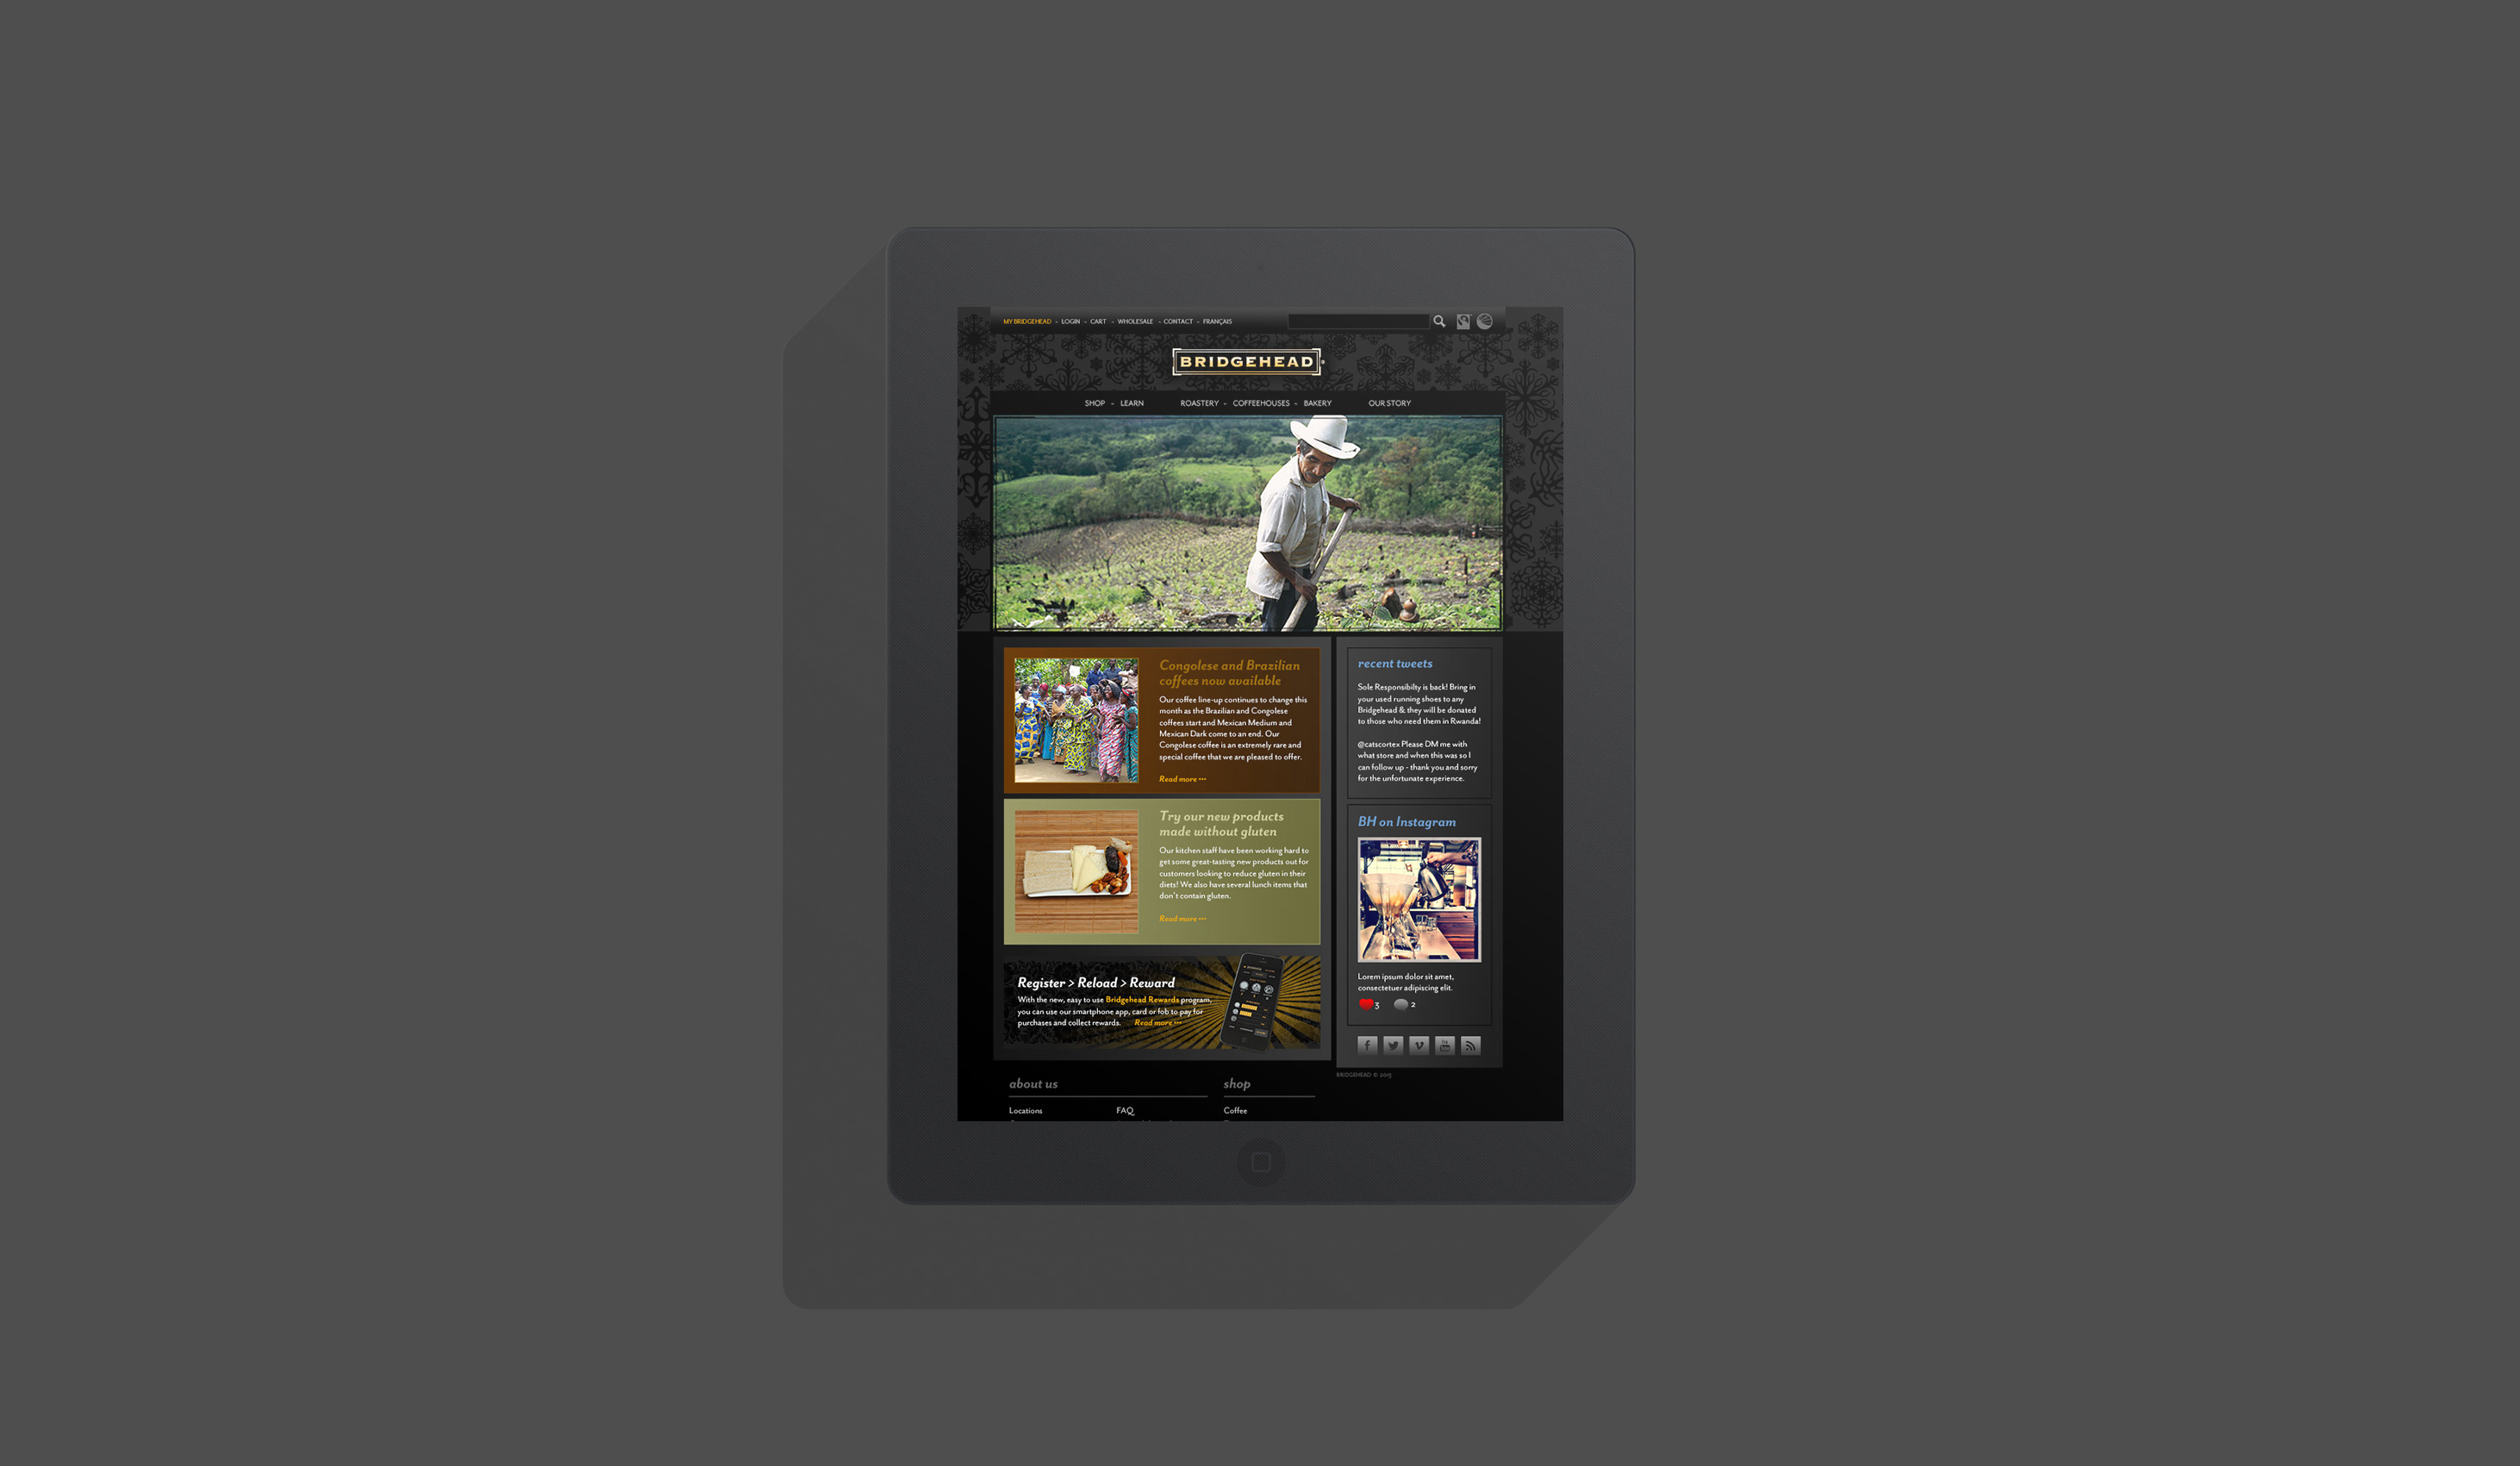 bridgehead-ipad